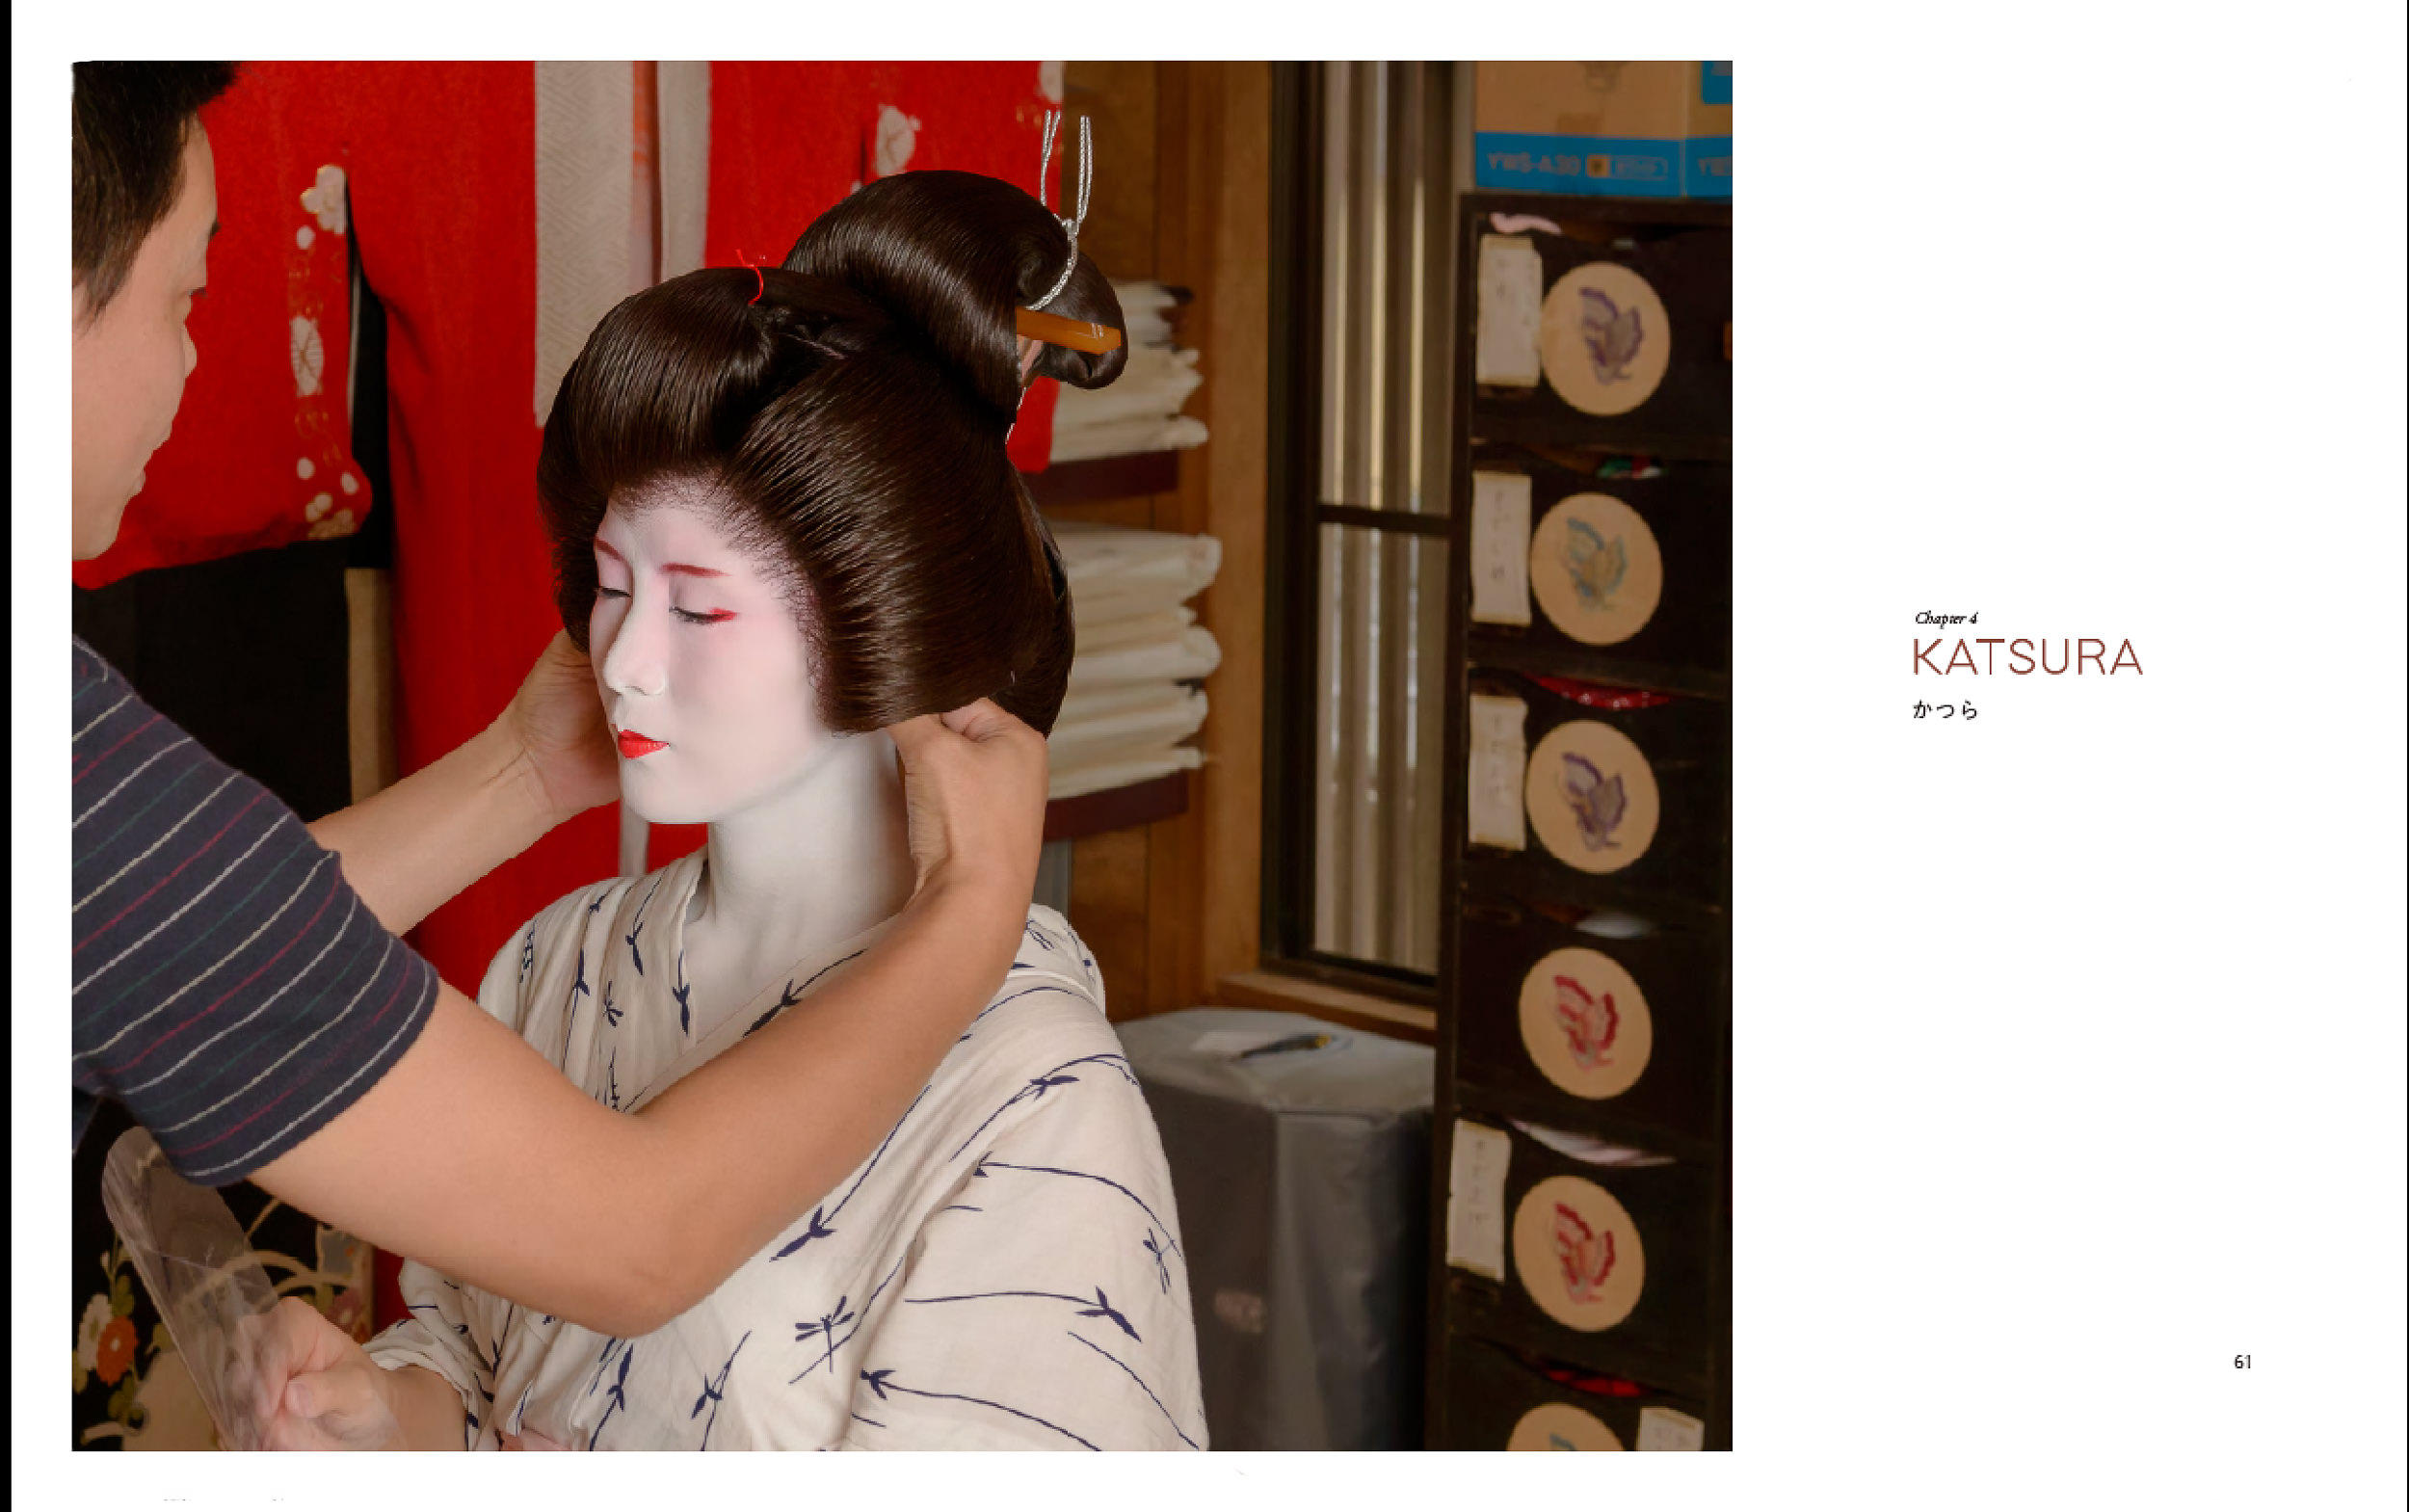 Now-a-Geisha-pages-60-61.jpg